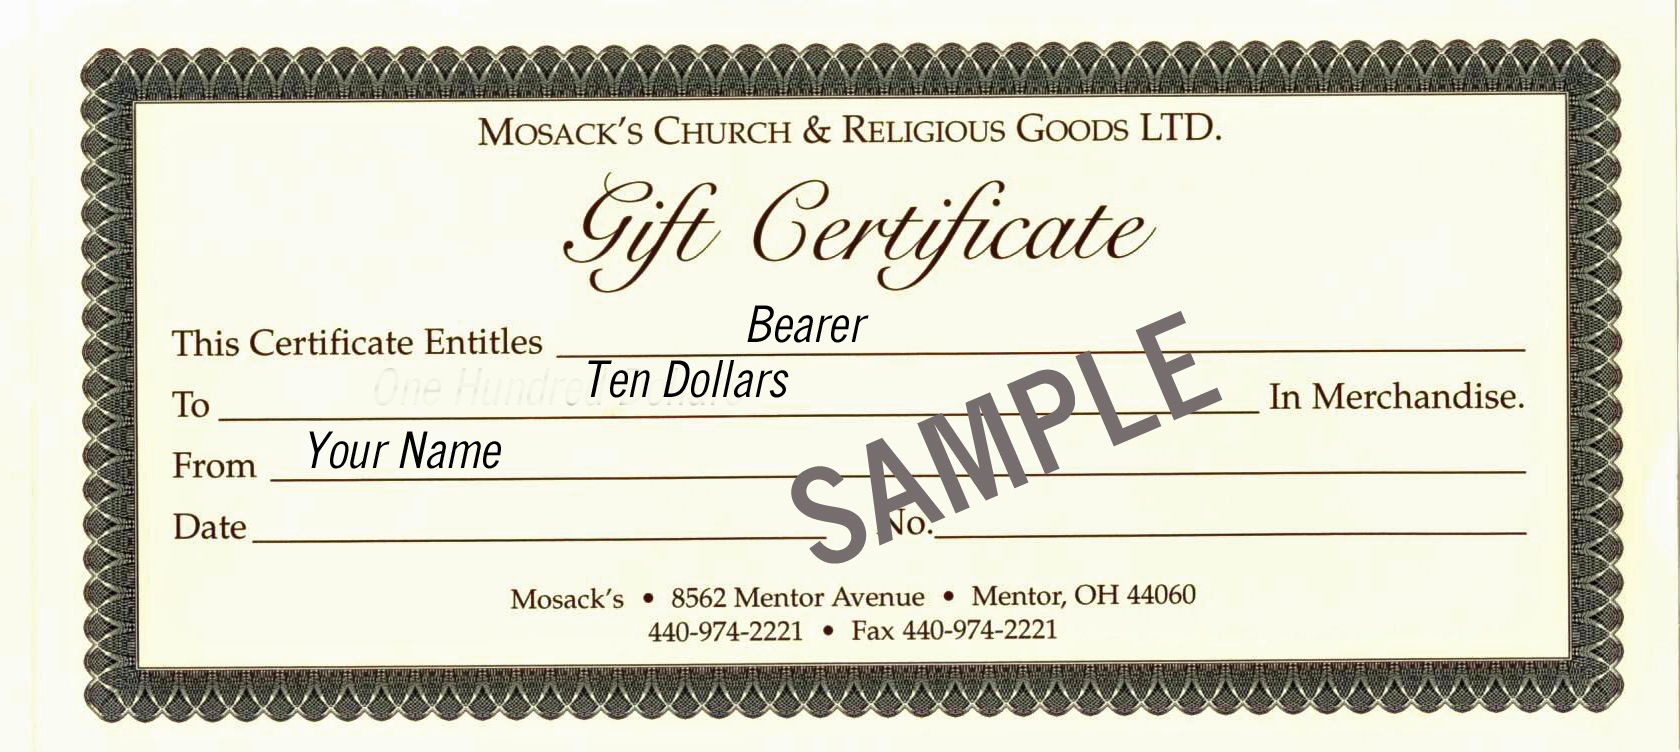 MOSACK'S $10 Gift Certificate